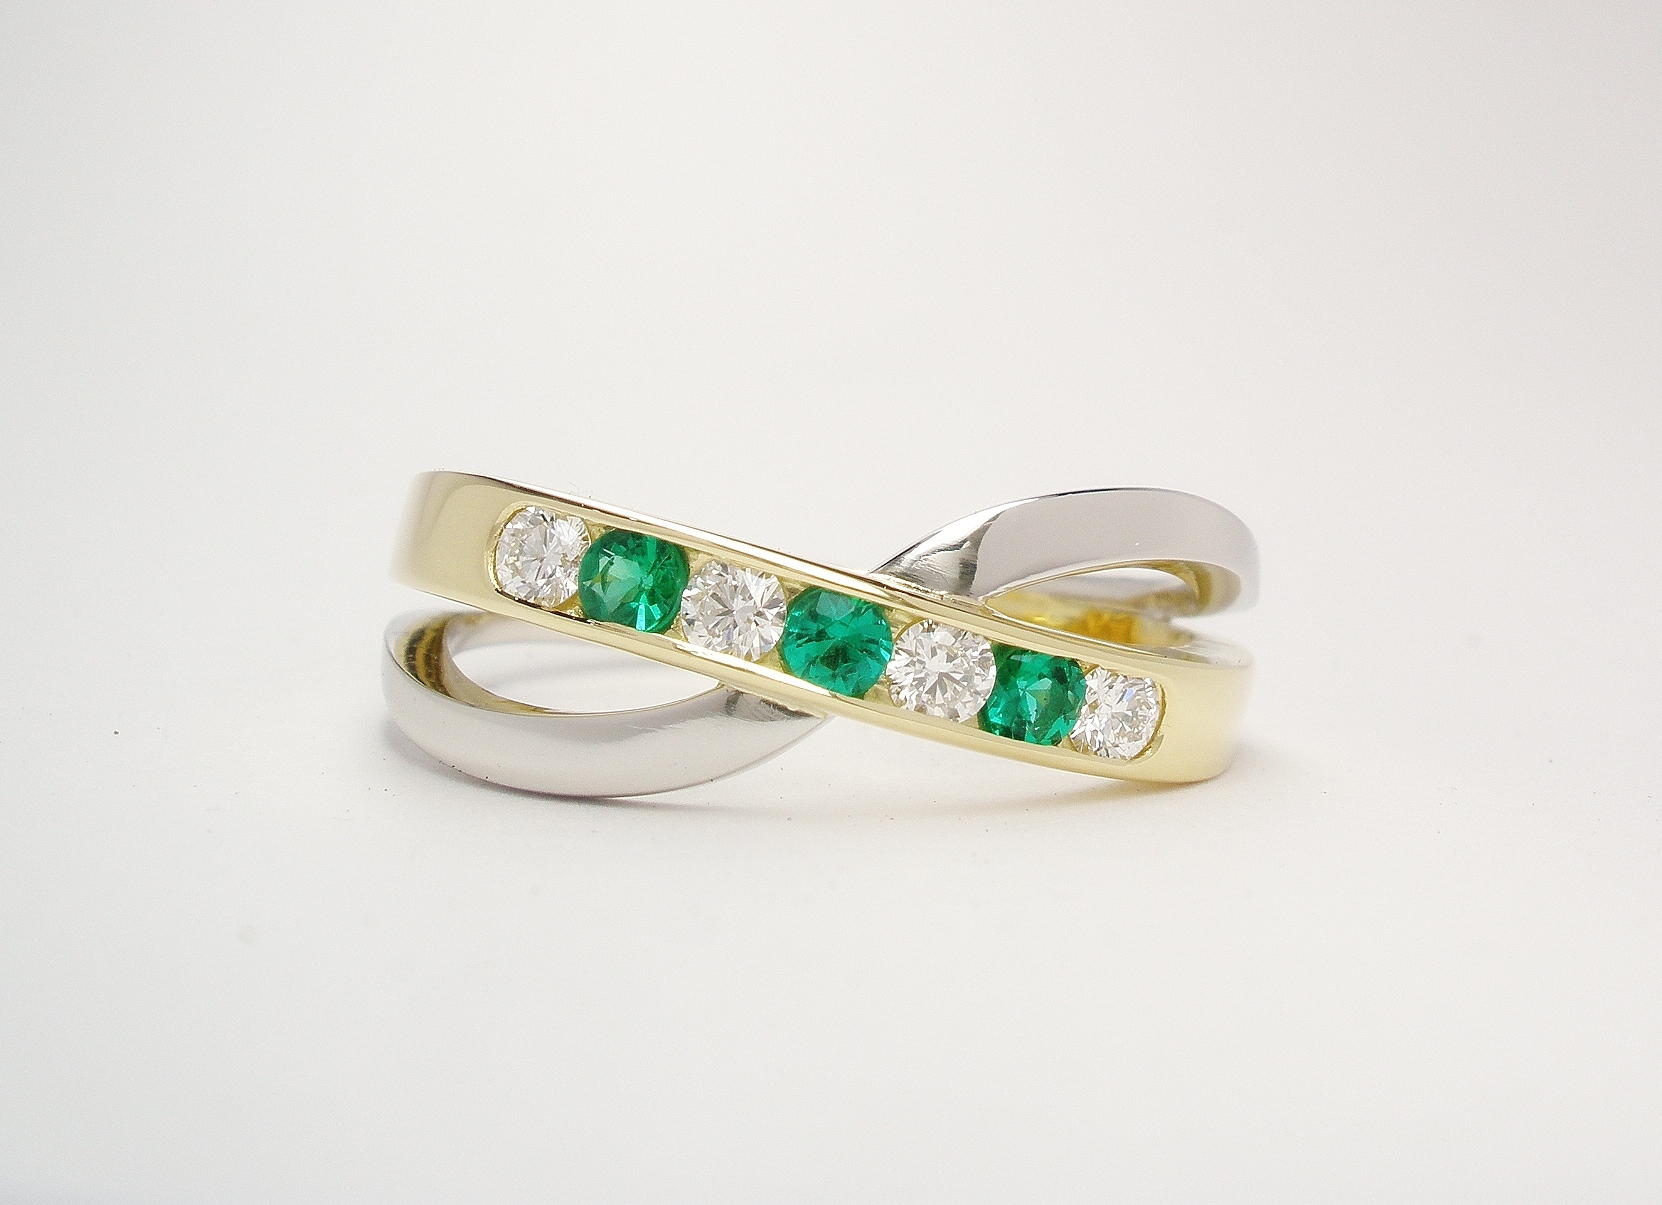 A 7 stone round brilliant cut diamond and emerald cross-over style ring mounted in 18ct. yellow gold and platinum.